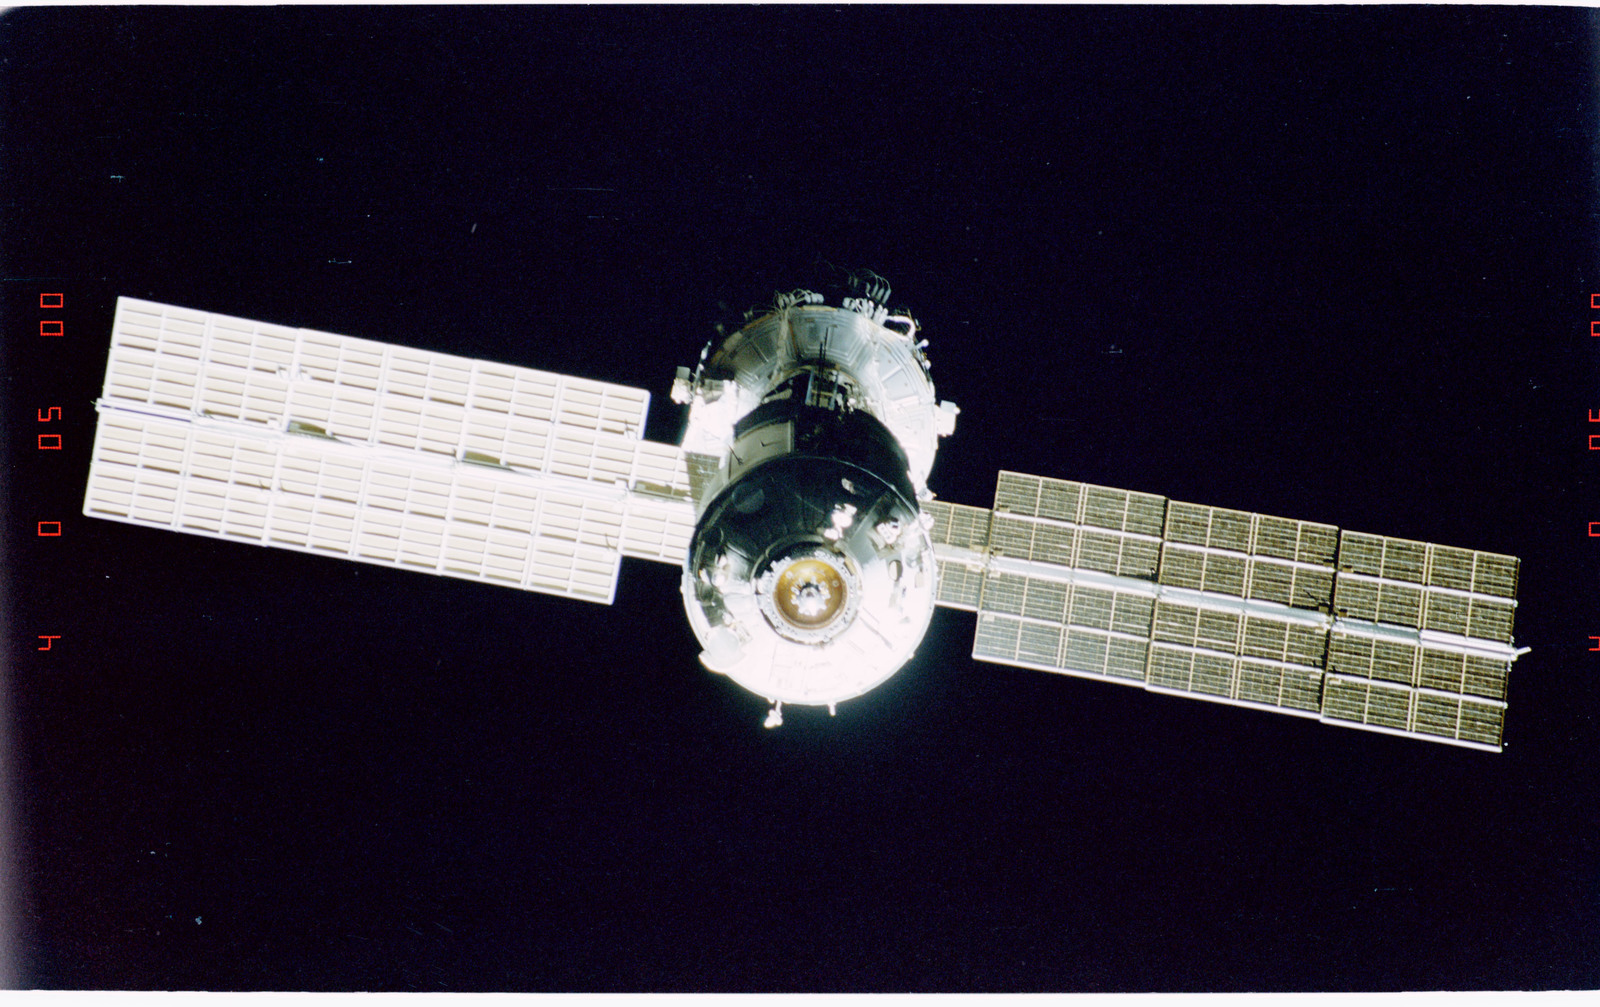 STS096-405-009 - STS-096 - End-on view of the ISS during fly-around